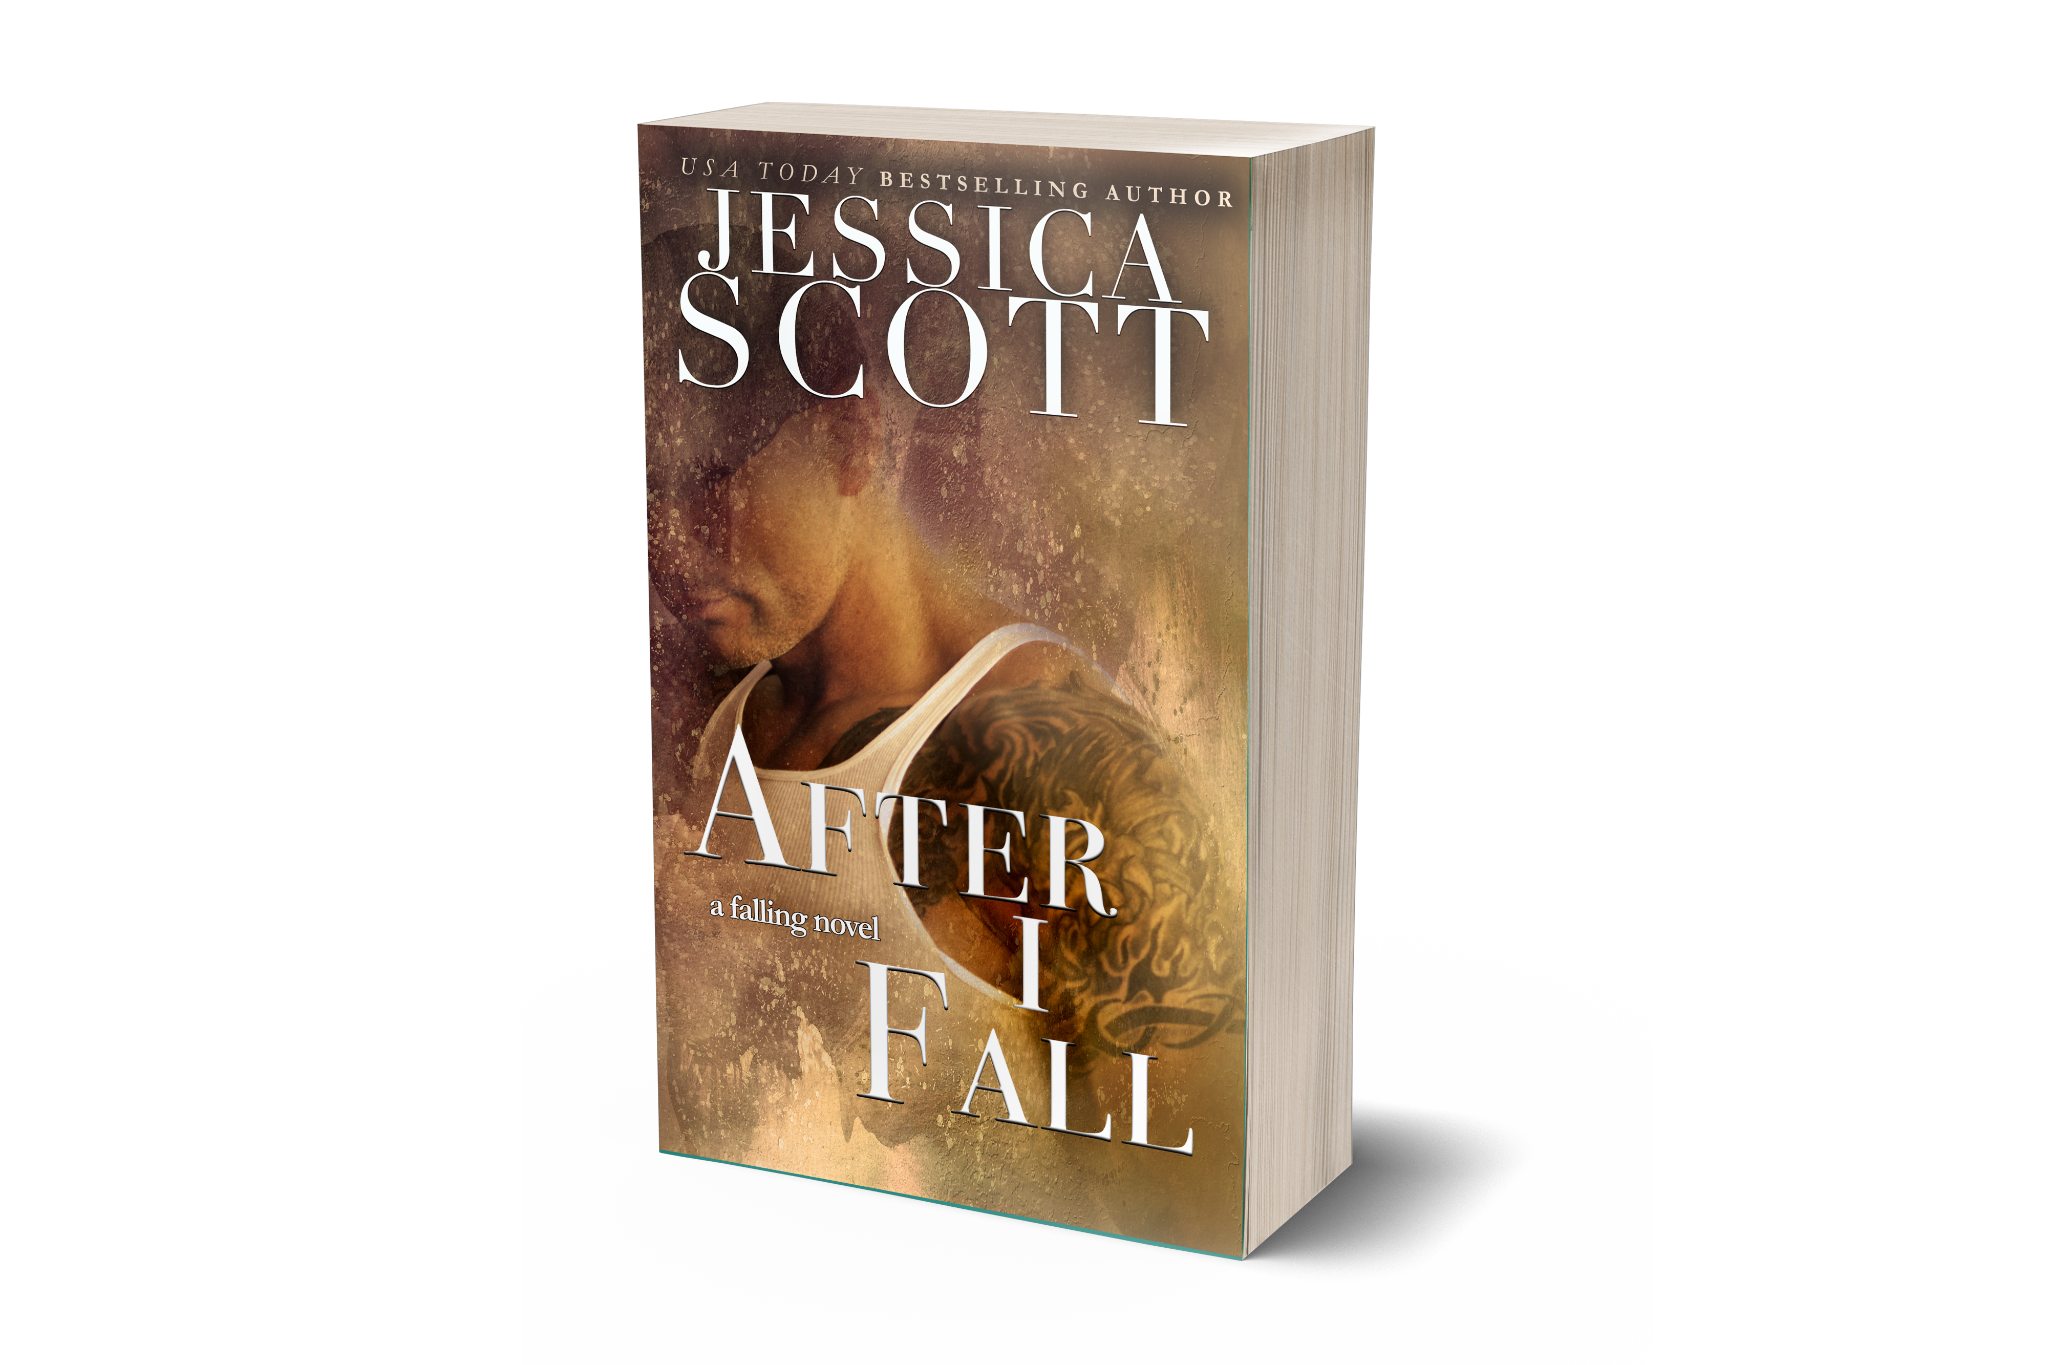 After I Fall Trade Paperback